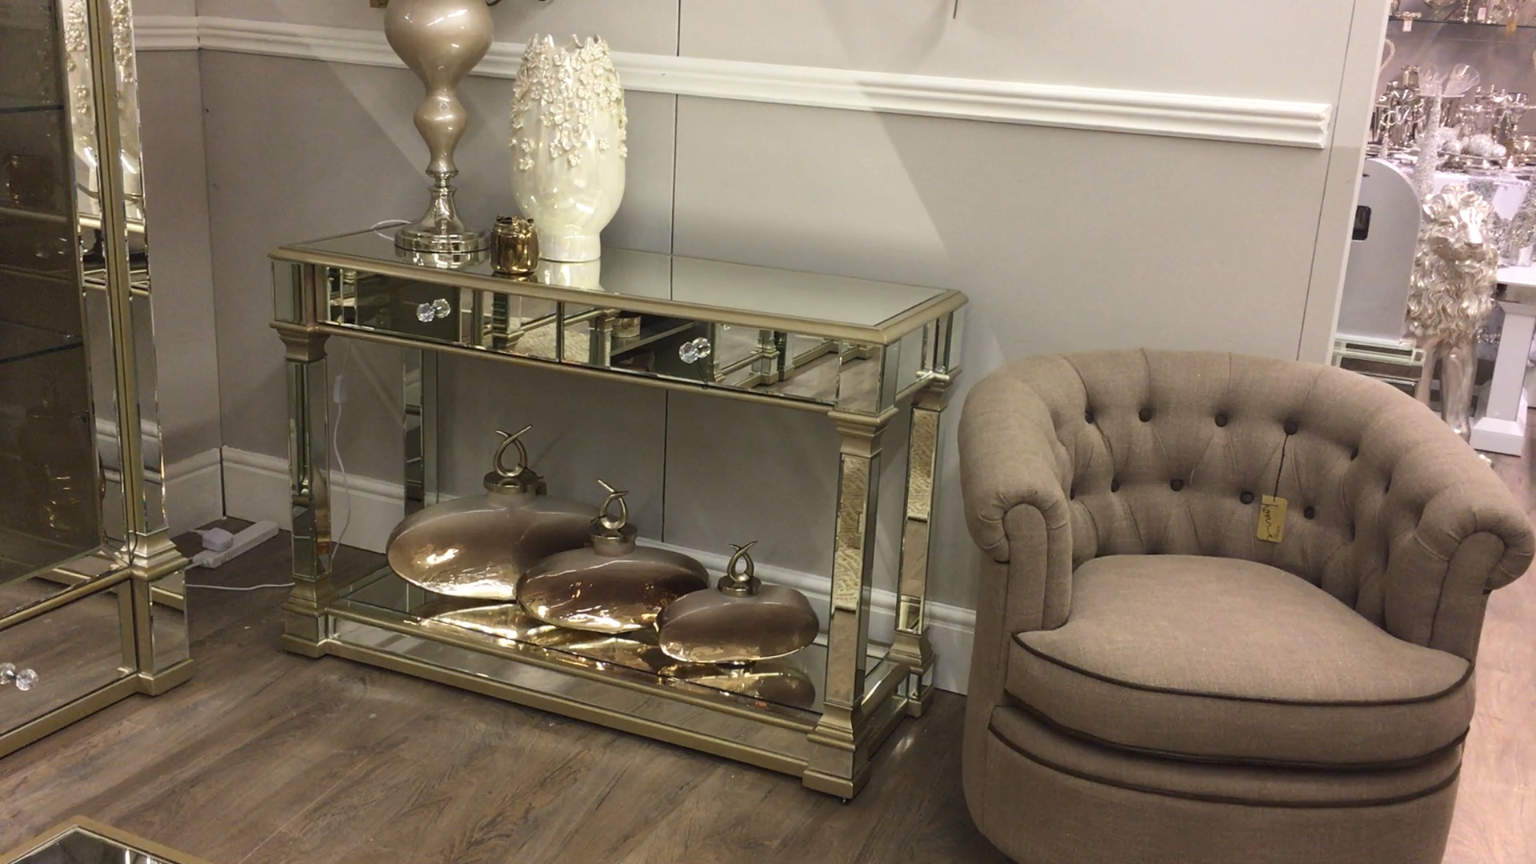 Athens Gold Mirrored 2 Drawer Console Table   Picture Perfect Home is part of Mirrored console table - Absolutely gorgeous 2 drawer mirrored console table with beautiful champagne gold glistening trim  Part of the stunning Athens range